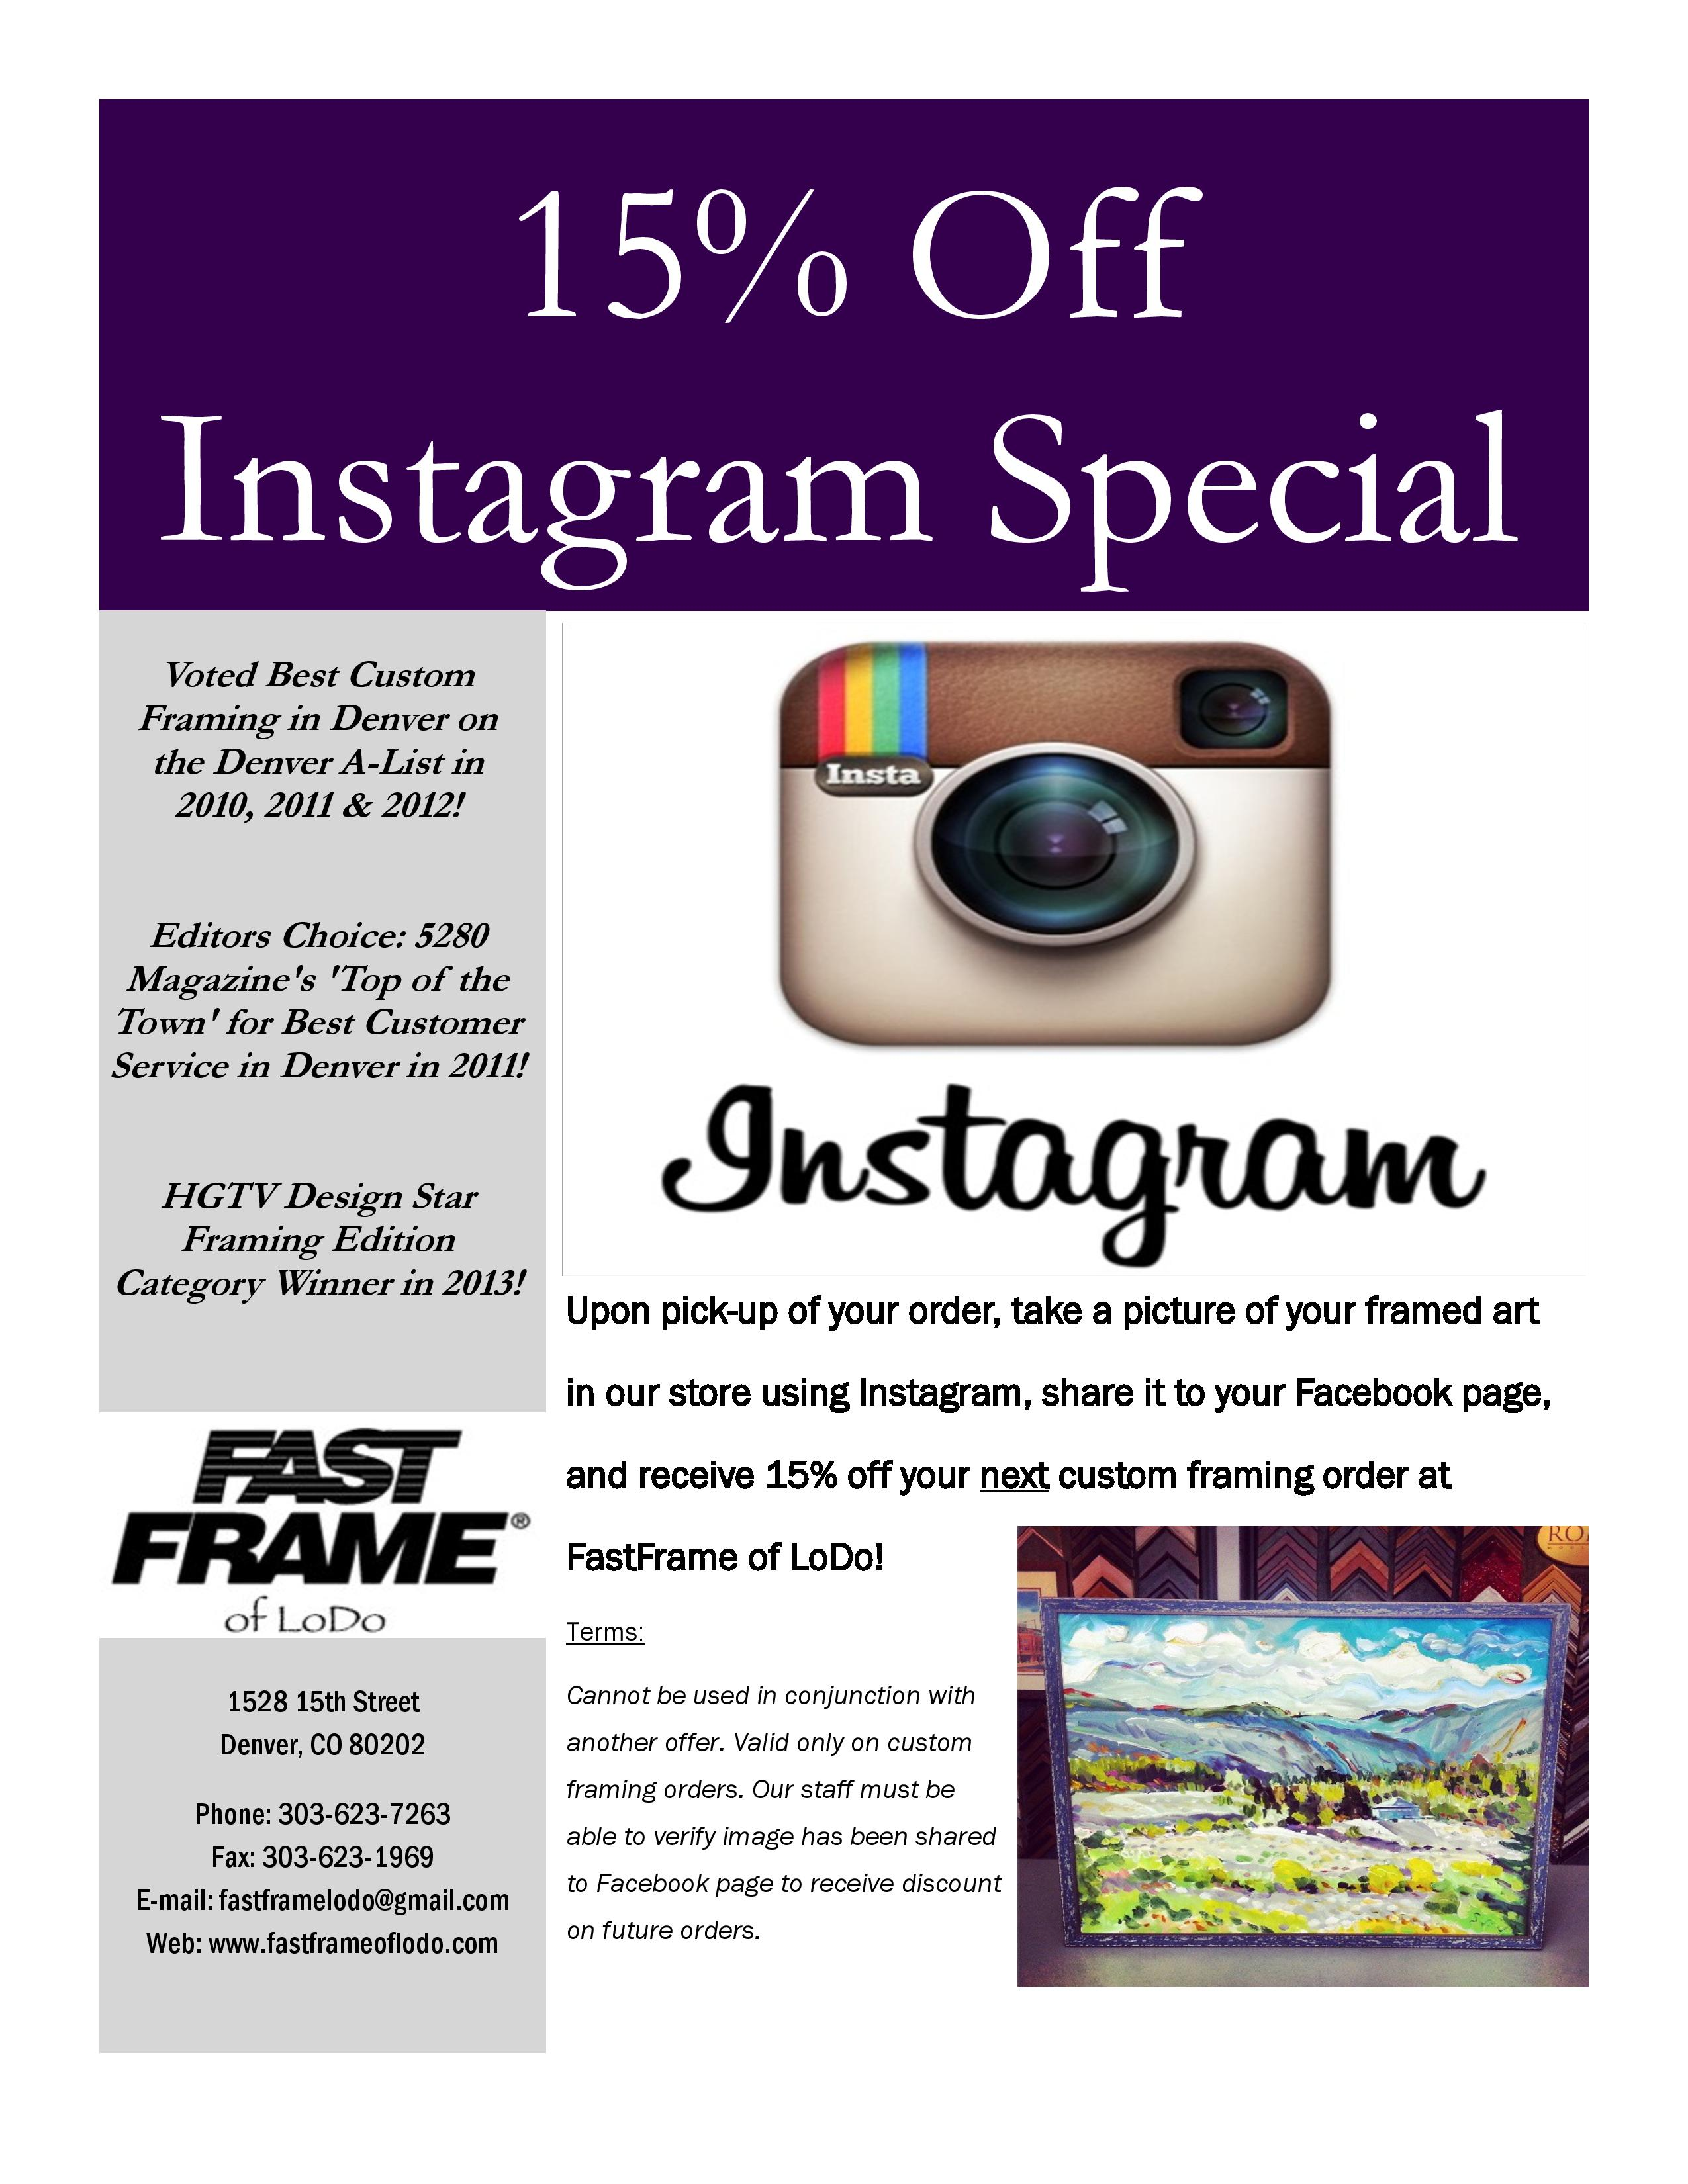 15 off instagram special fastframe of lodo expert picture framing. Black Bedroom Furniture Sets. Home Design Ideas